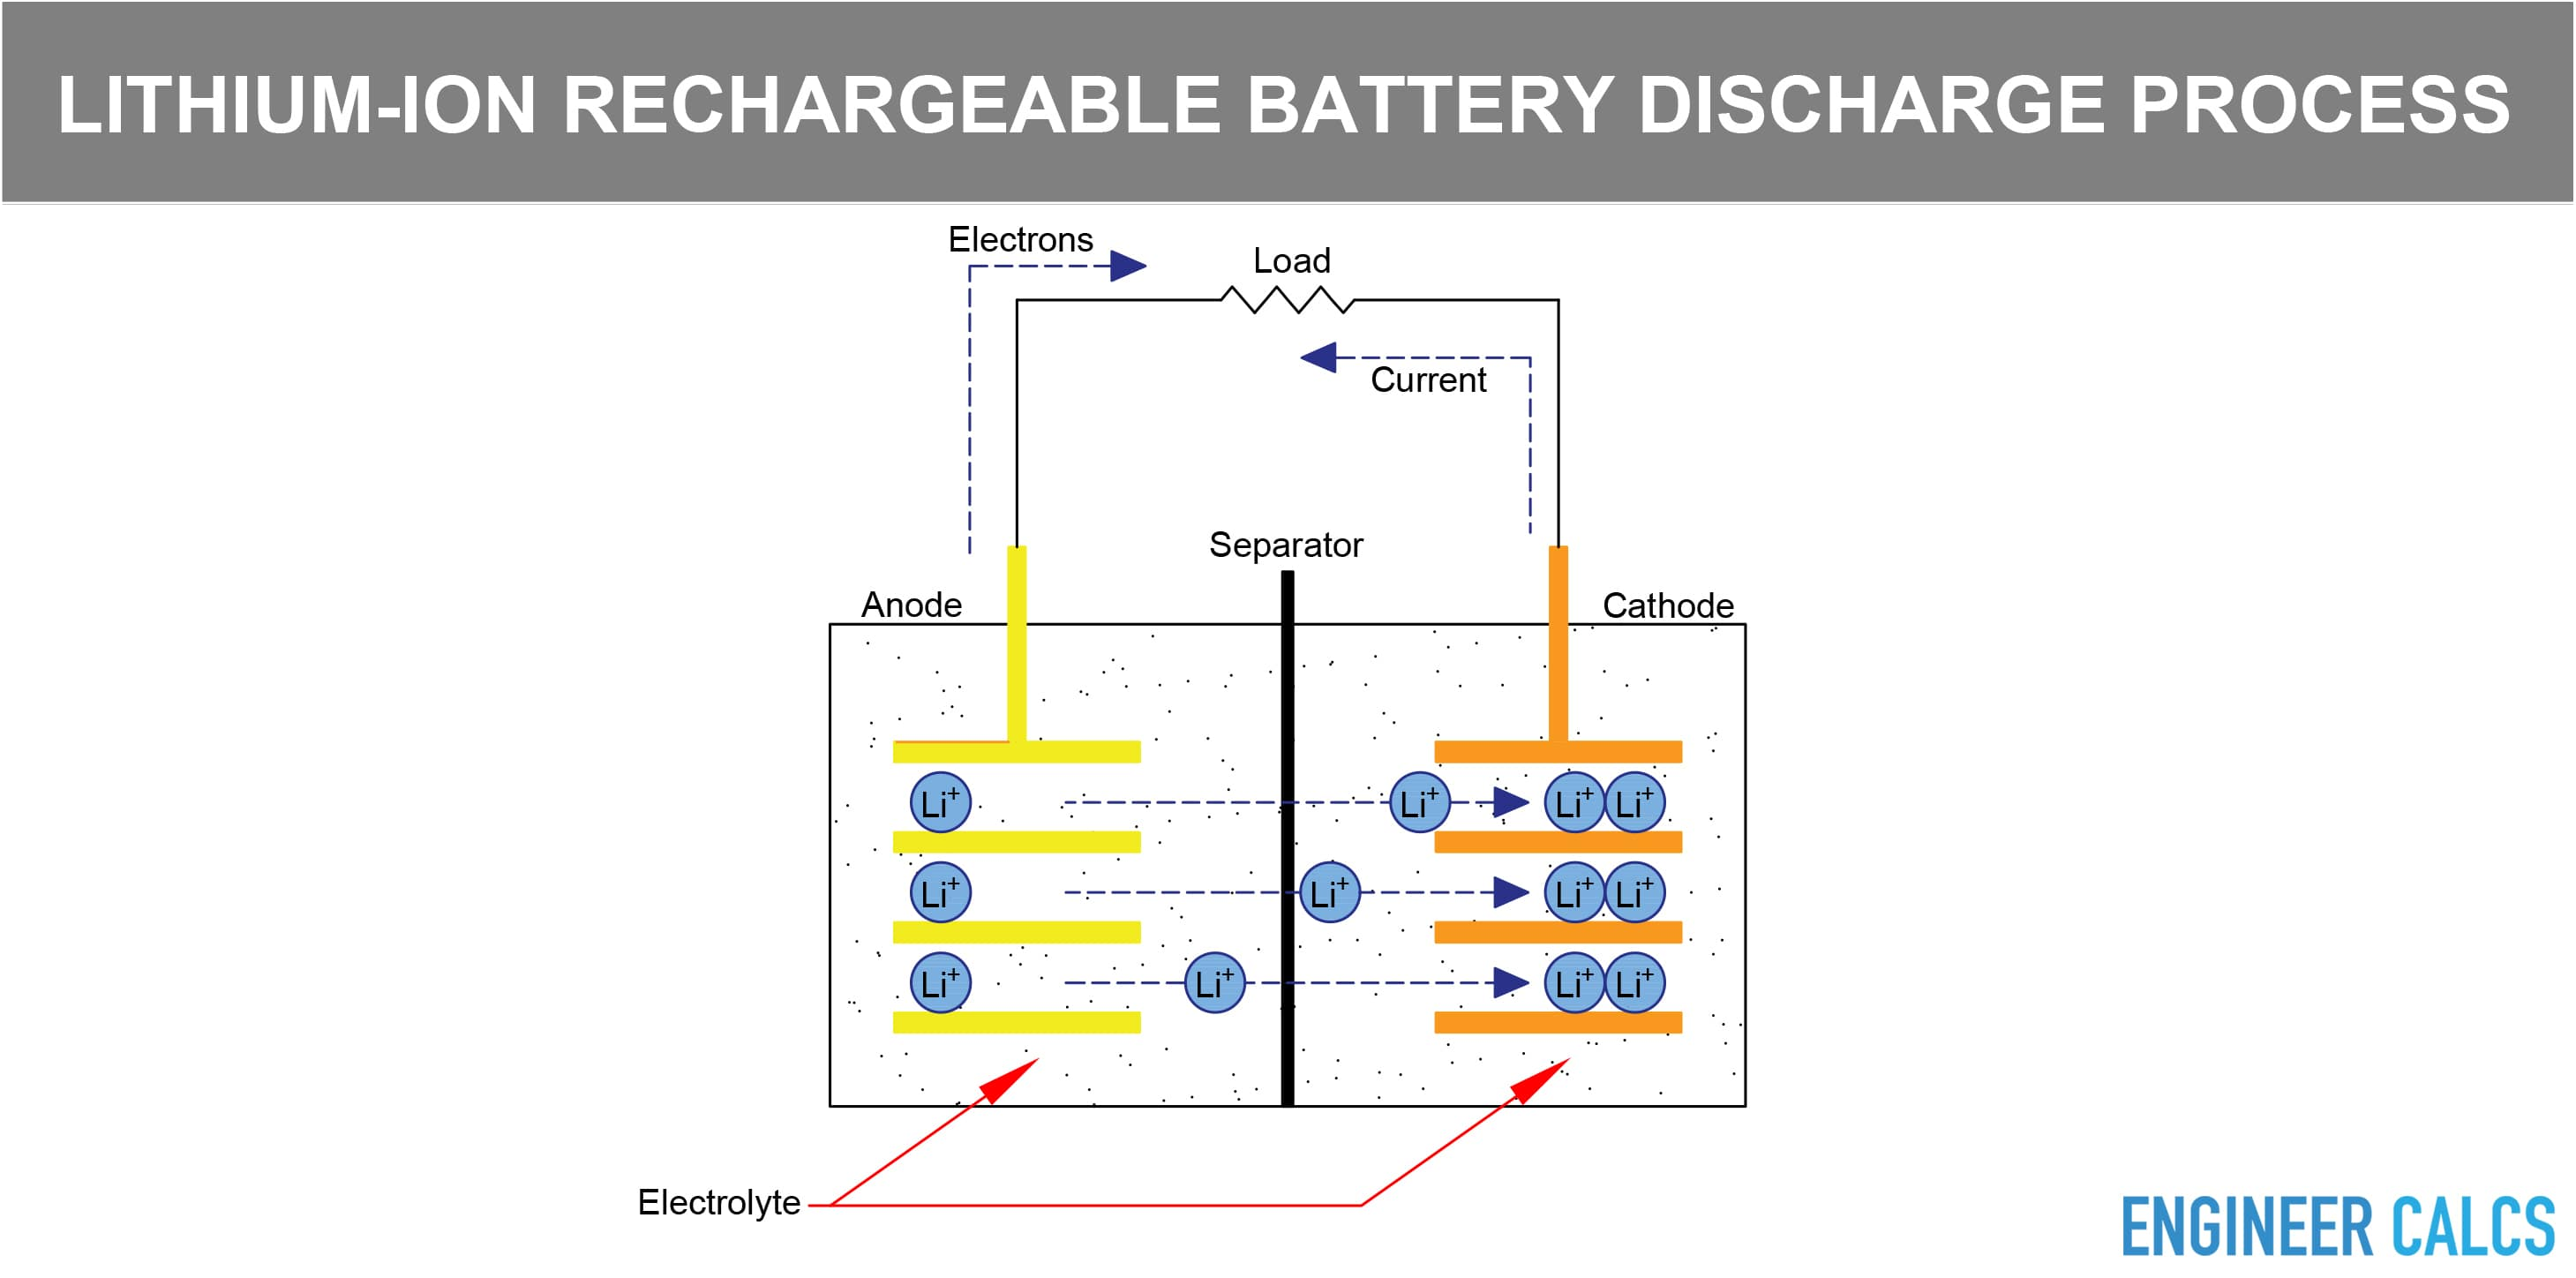 Lithium ion rechargeable battery discharge process